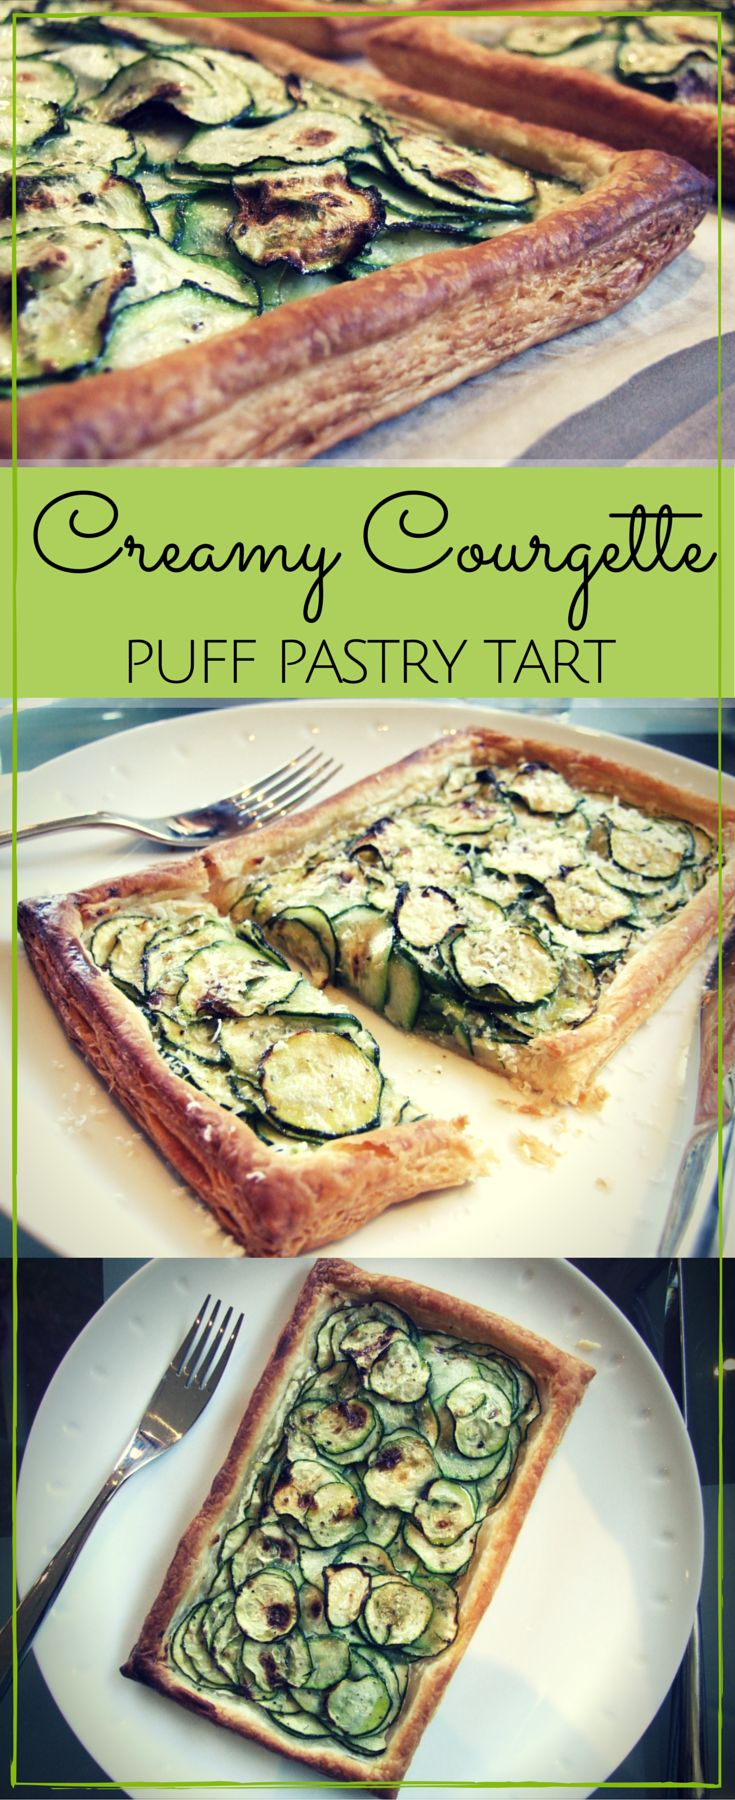 Make the most of seasonal produce with this quick & easy creamy courgette puff pastry tart. Summery and delicious!